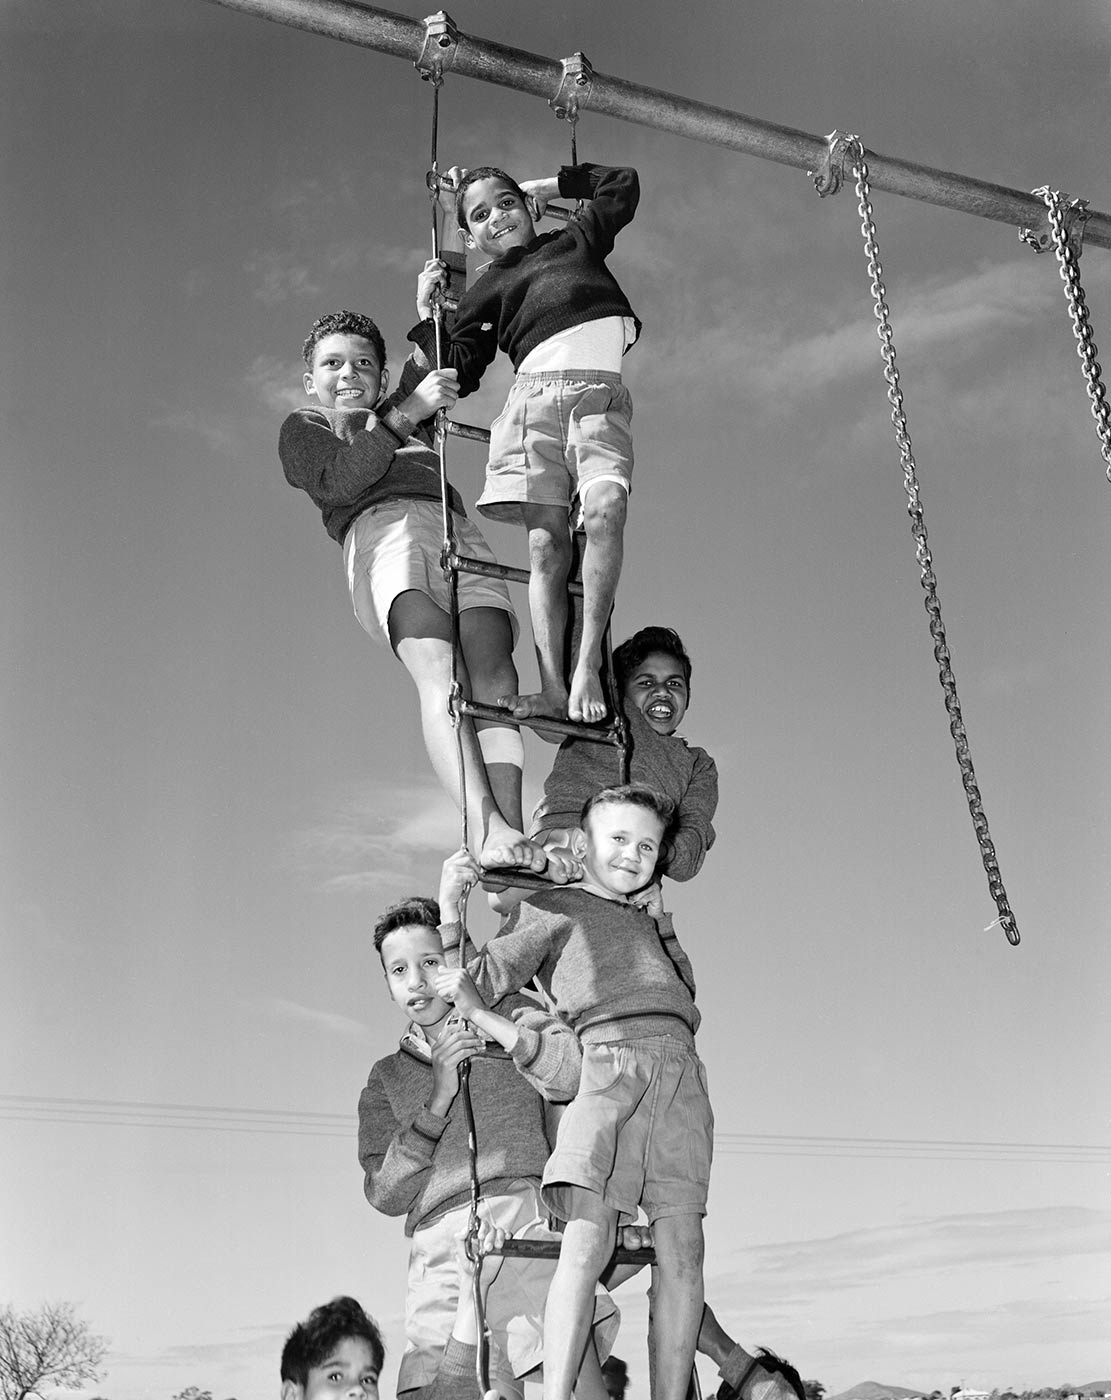 Black and white photograph showing a group of boys standing on a metal ladder in a playground. The boys wear school uniform of v-necked jumpers and shorts. The image clearly shows five smiling boys, with the heads of two other boys partially visible below. - click to view larger image